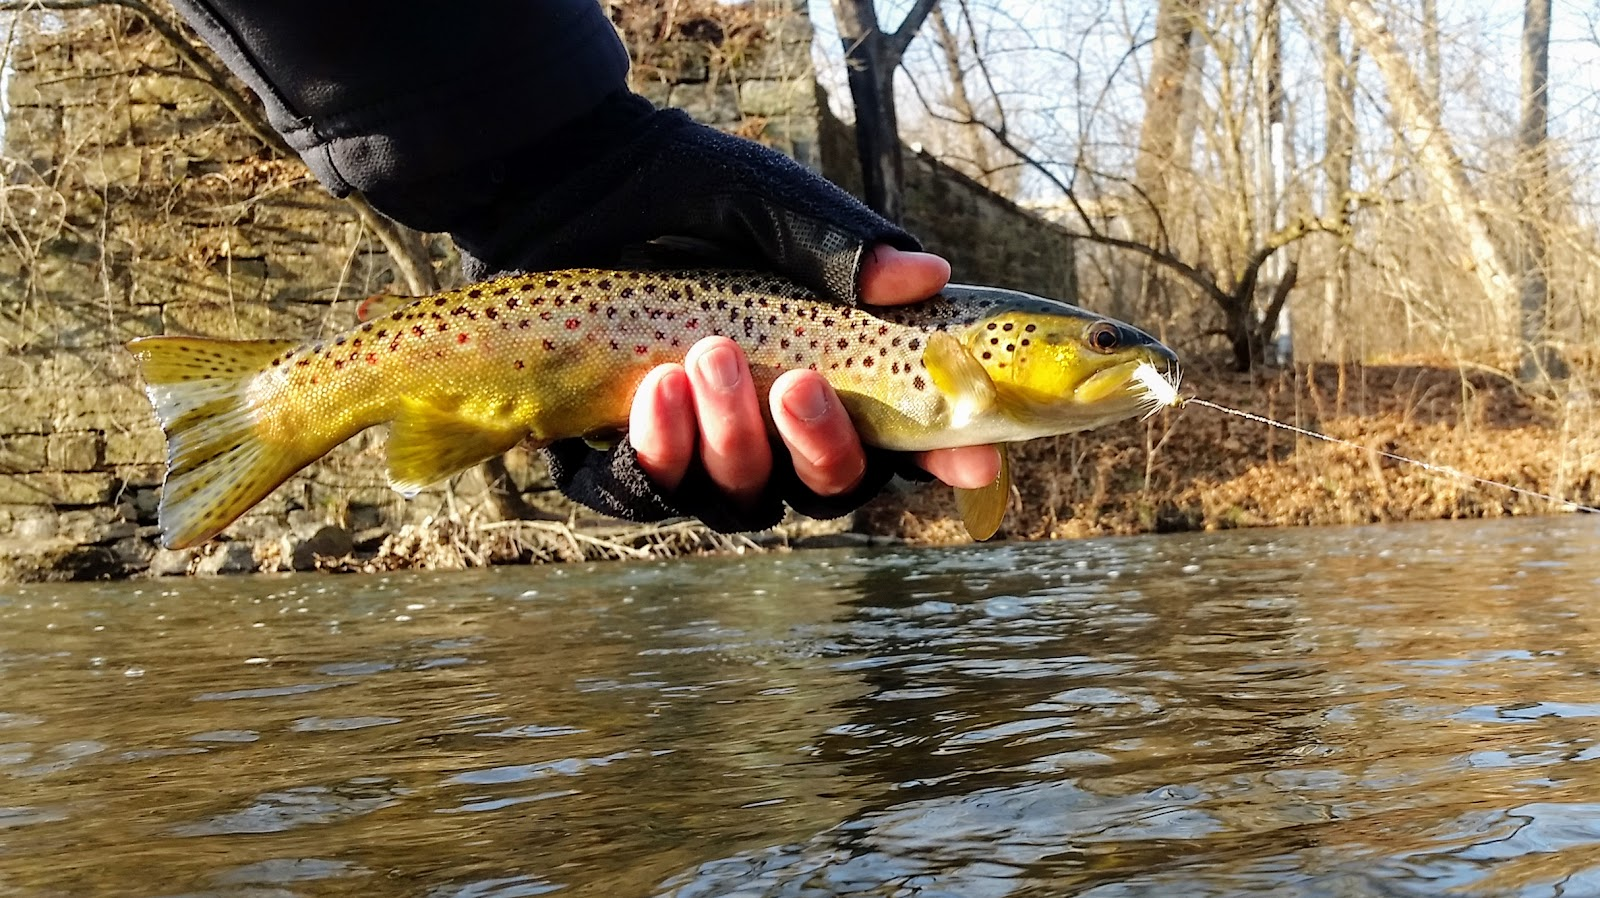 Sick days fishing december 18 to 22 2016 a fishing for Stocked trout fishing